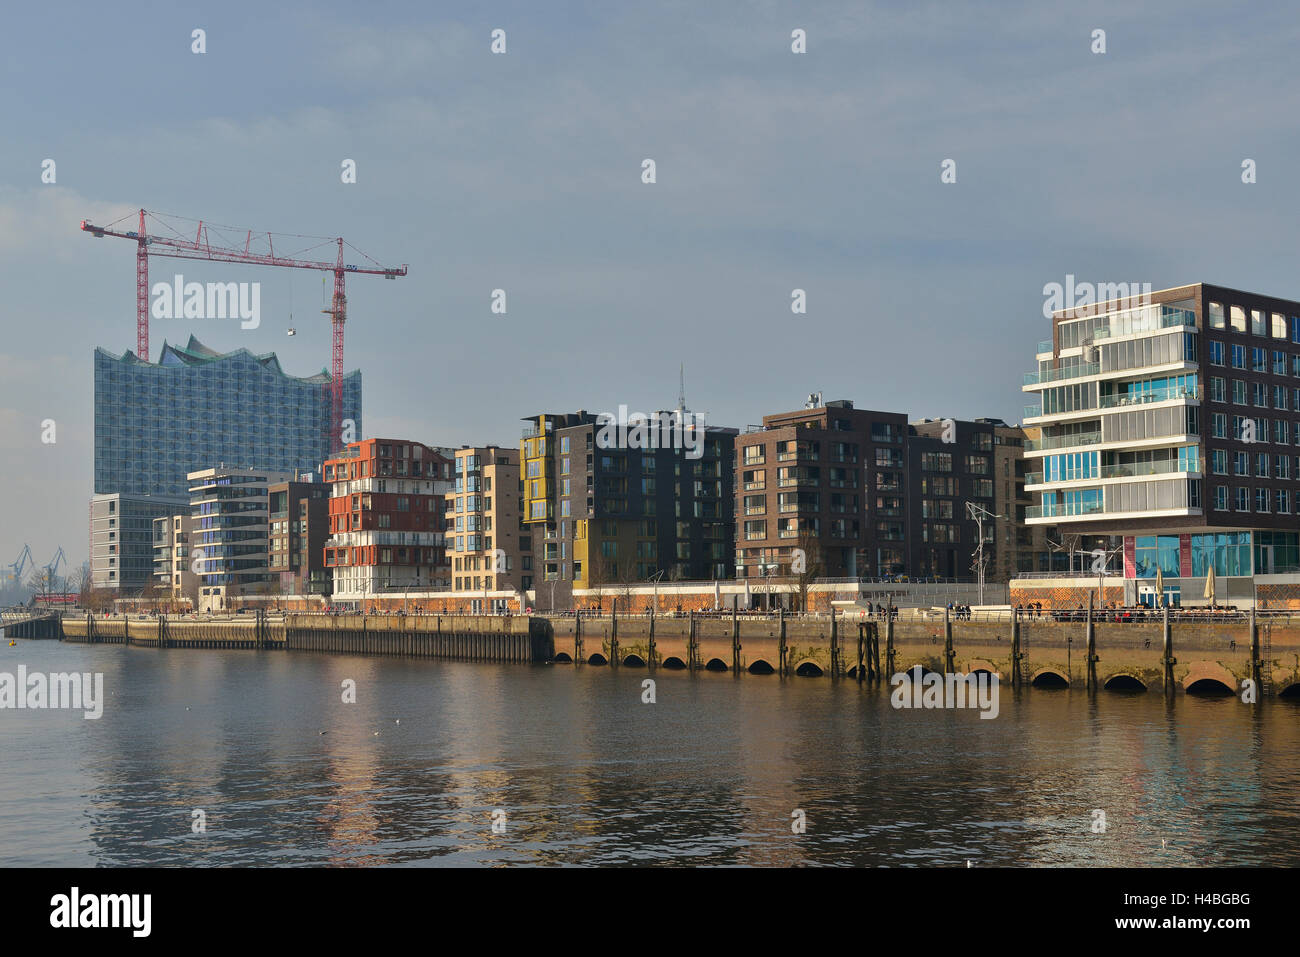 Hafen City, Hamburg, Germany - Stock Image